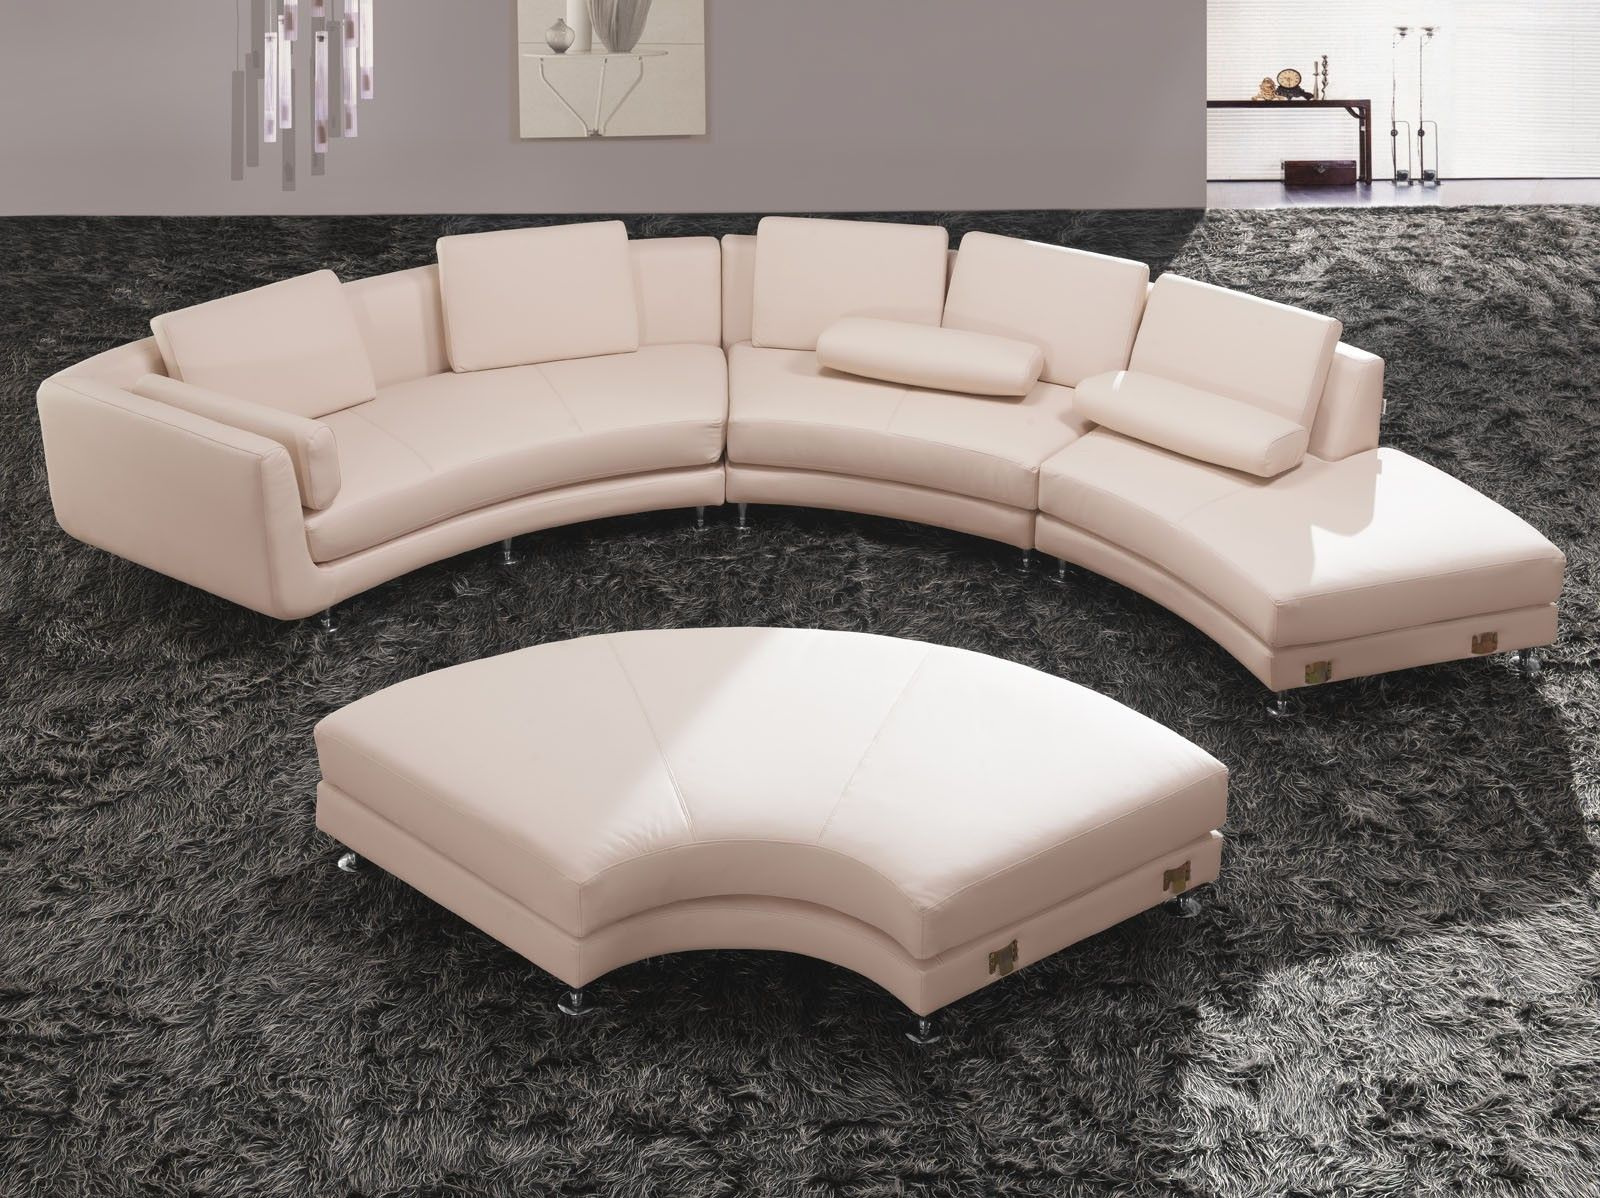 Classy Curved Sectional Sofa For Living Room Decoration: Off White Bonded  Leather Curved Sectional Sofa